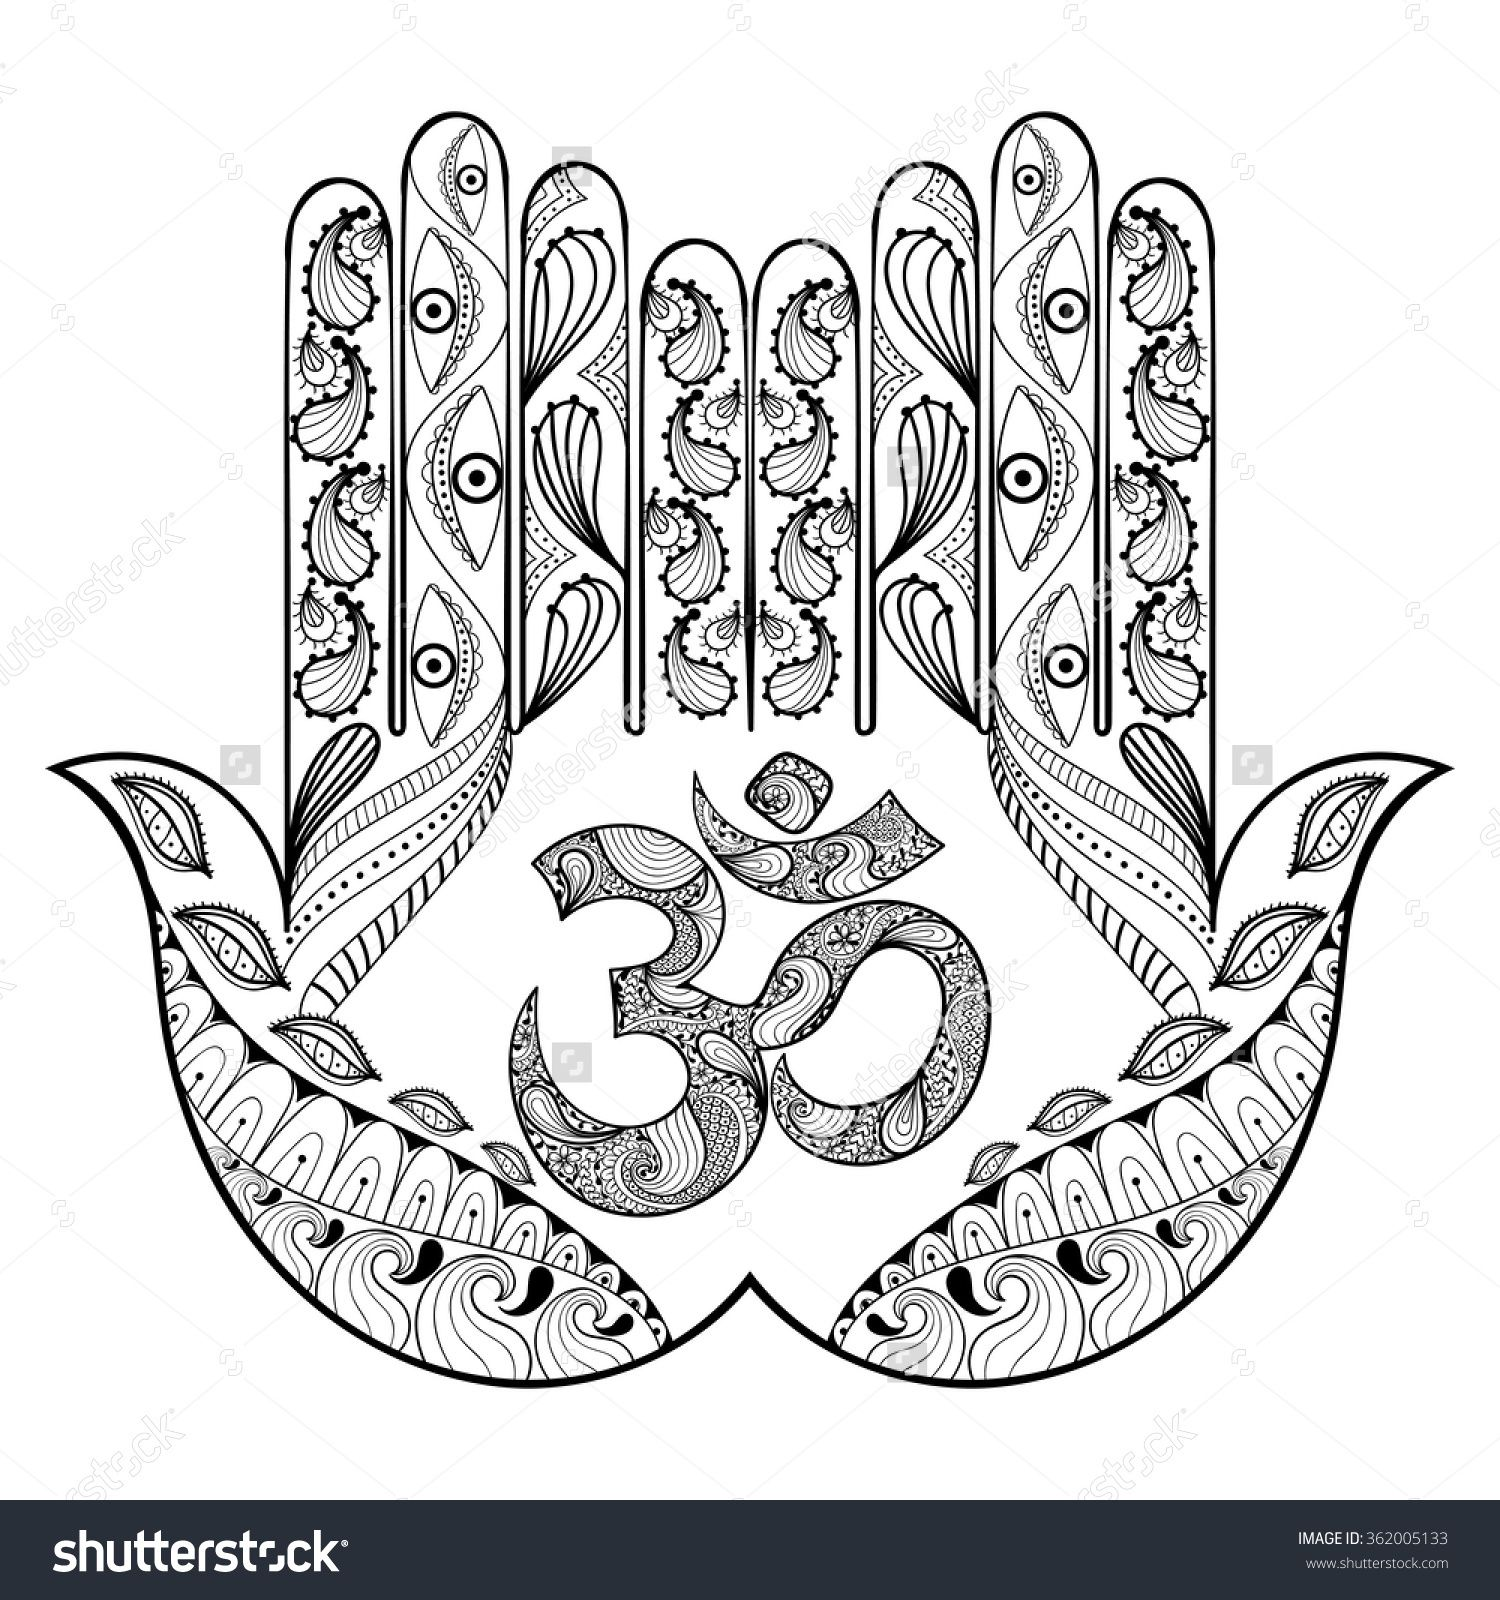 Image result for coloring pages for adults to print | Coloring books ...